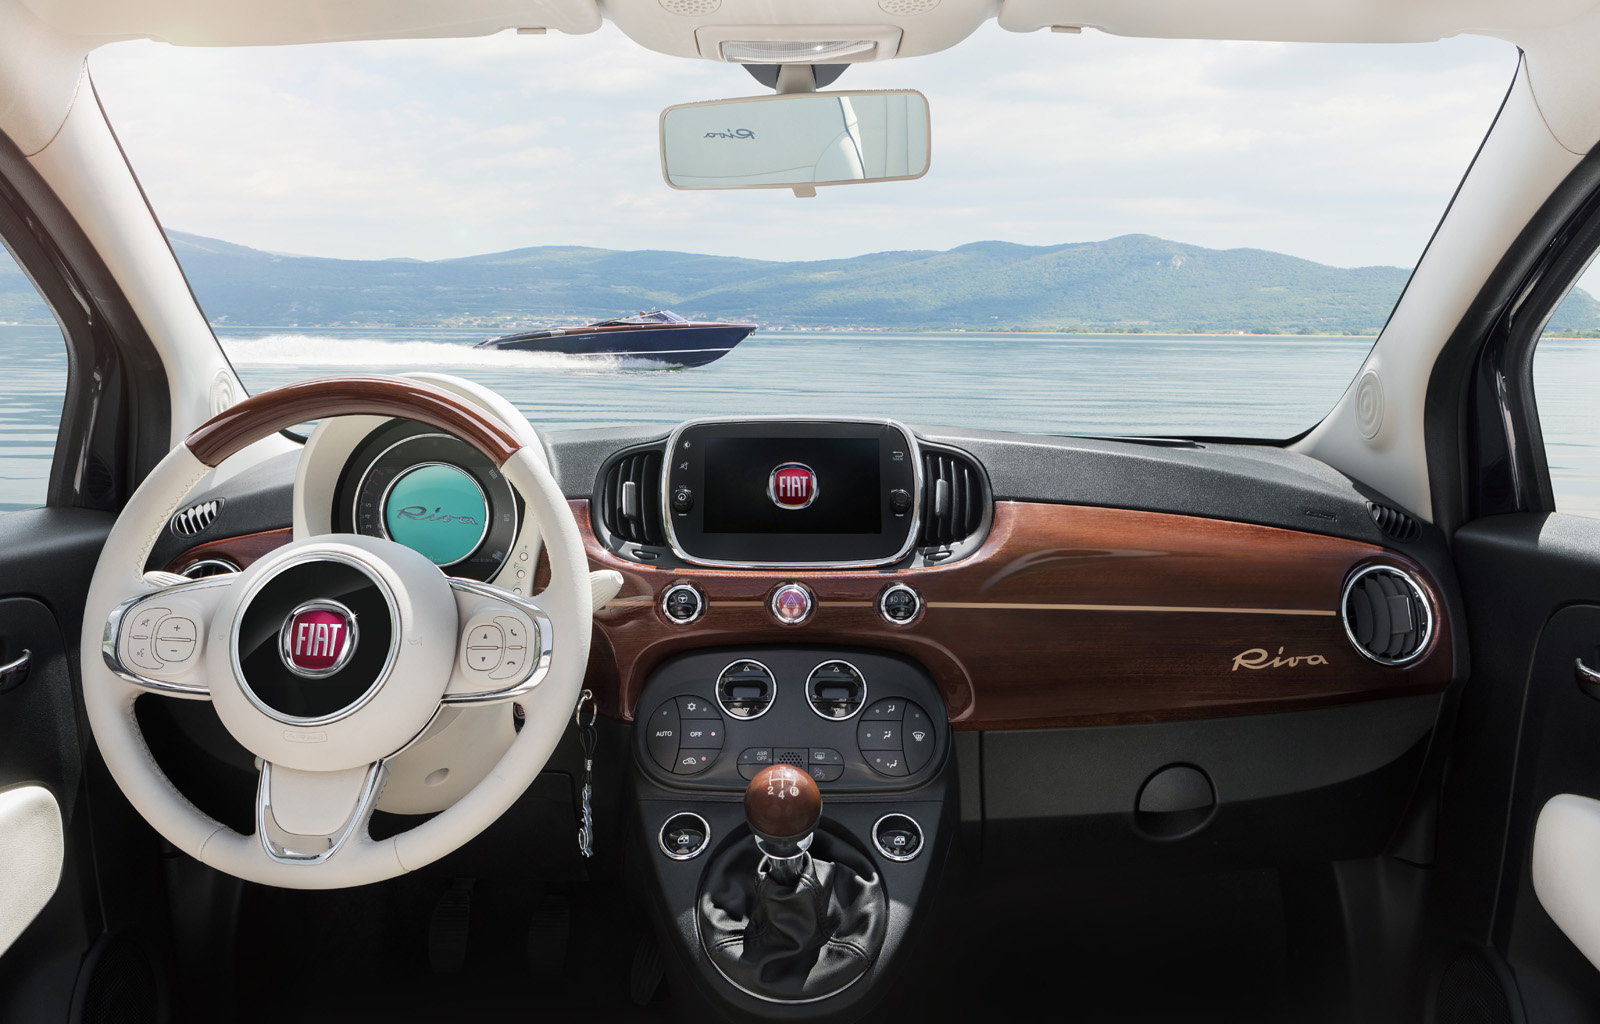 Fiat 500 Gucci >> Fiat 500 Riva Edition Channels The Spirit Of The Luxury Yachting